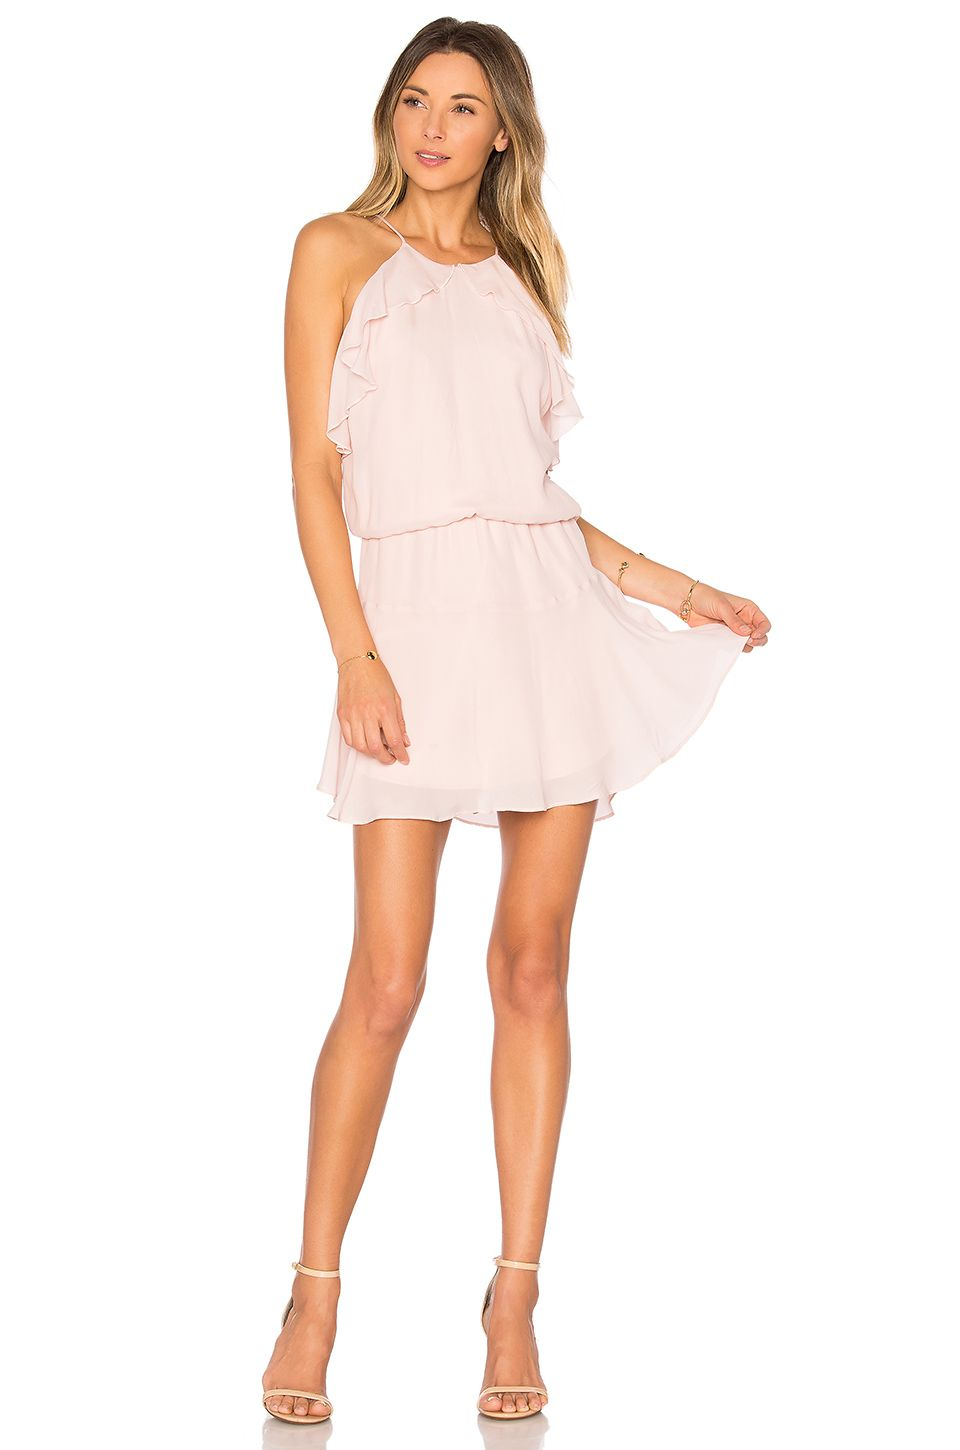 Cheap Wide Range Of Discount Outlet Glass Dress in Blush Assali Free Shipping Pick A Best Low Price Fee Shipping Sale Online Outlet Store Cheap Price rvKBI